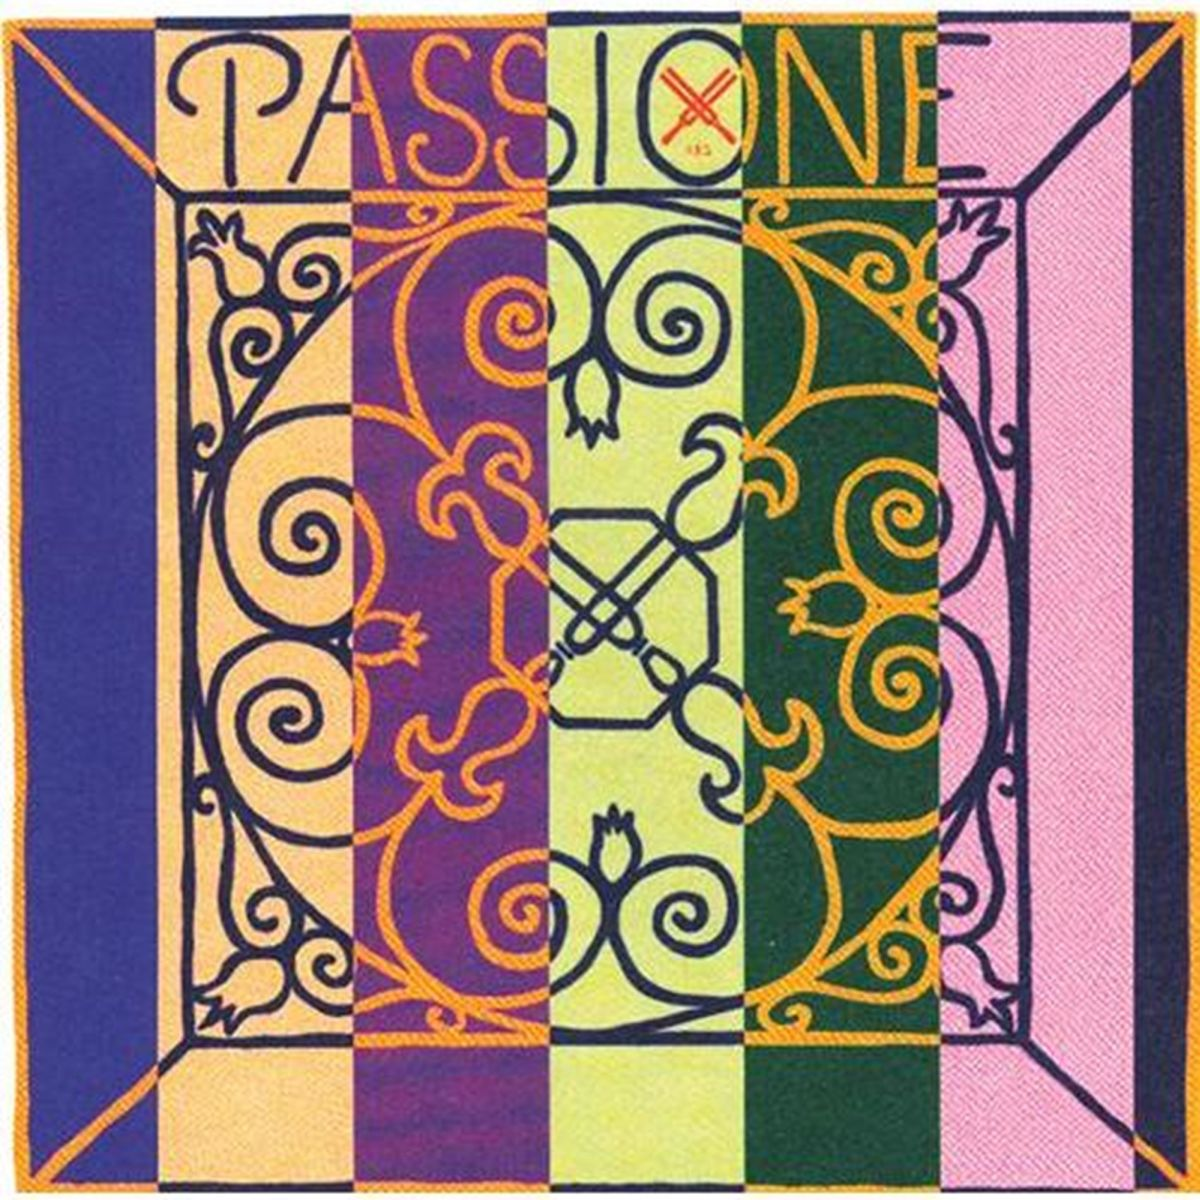 Pirastro Passione Cello Strings - Strings, Bows & More